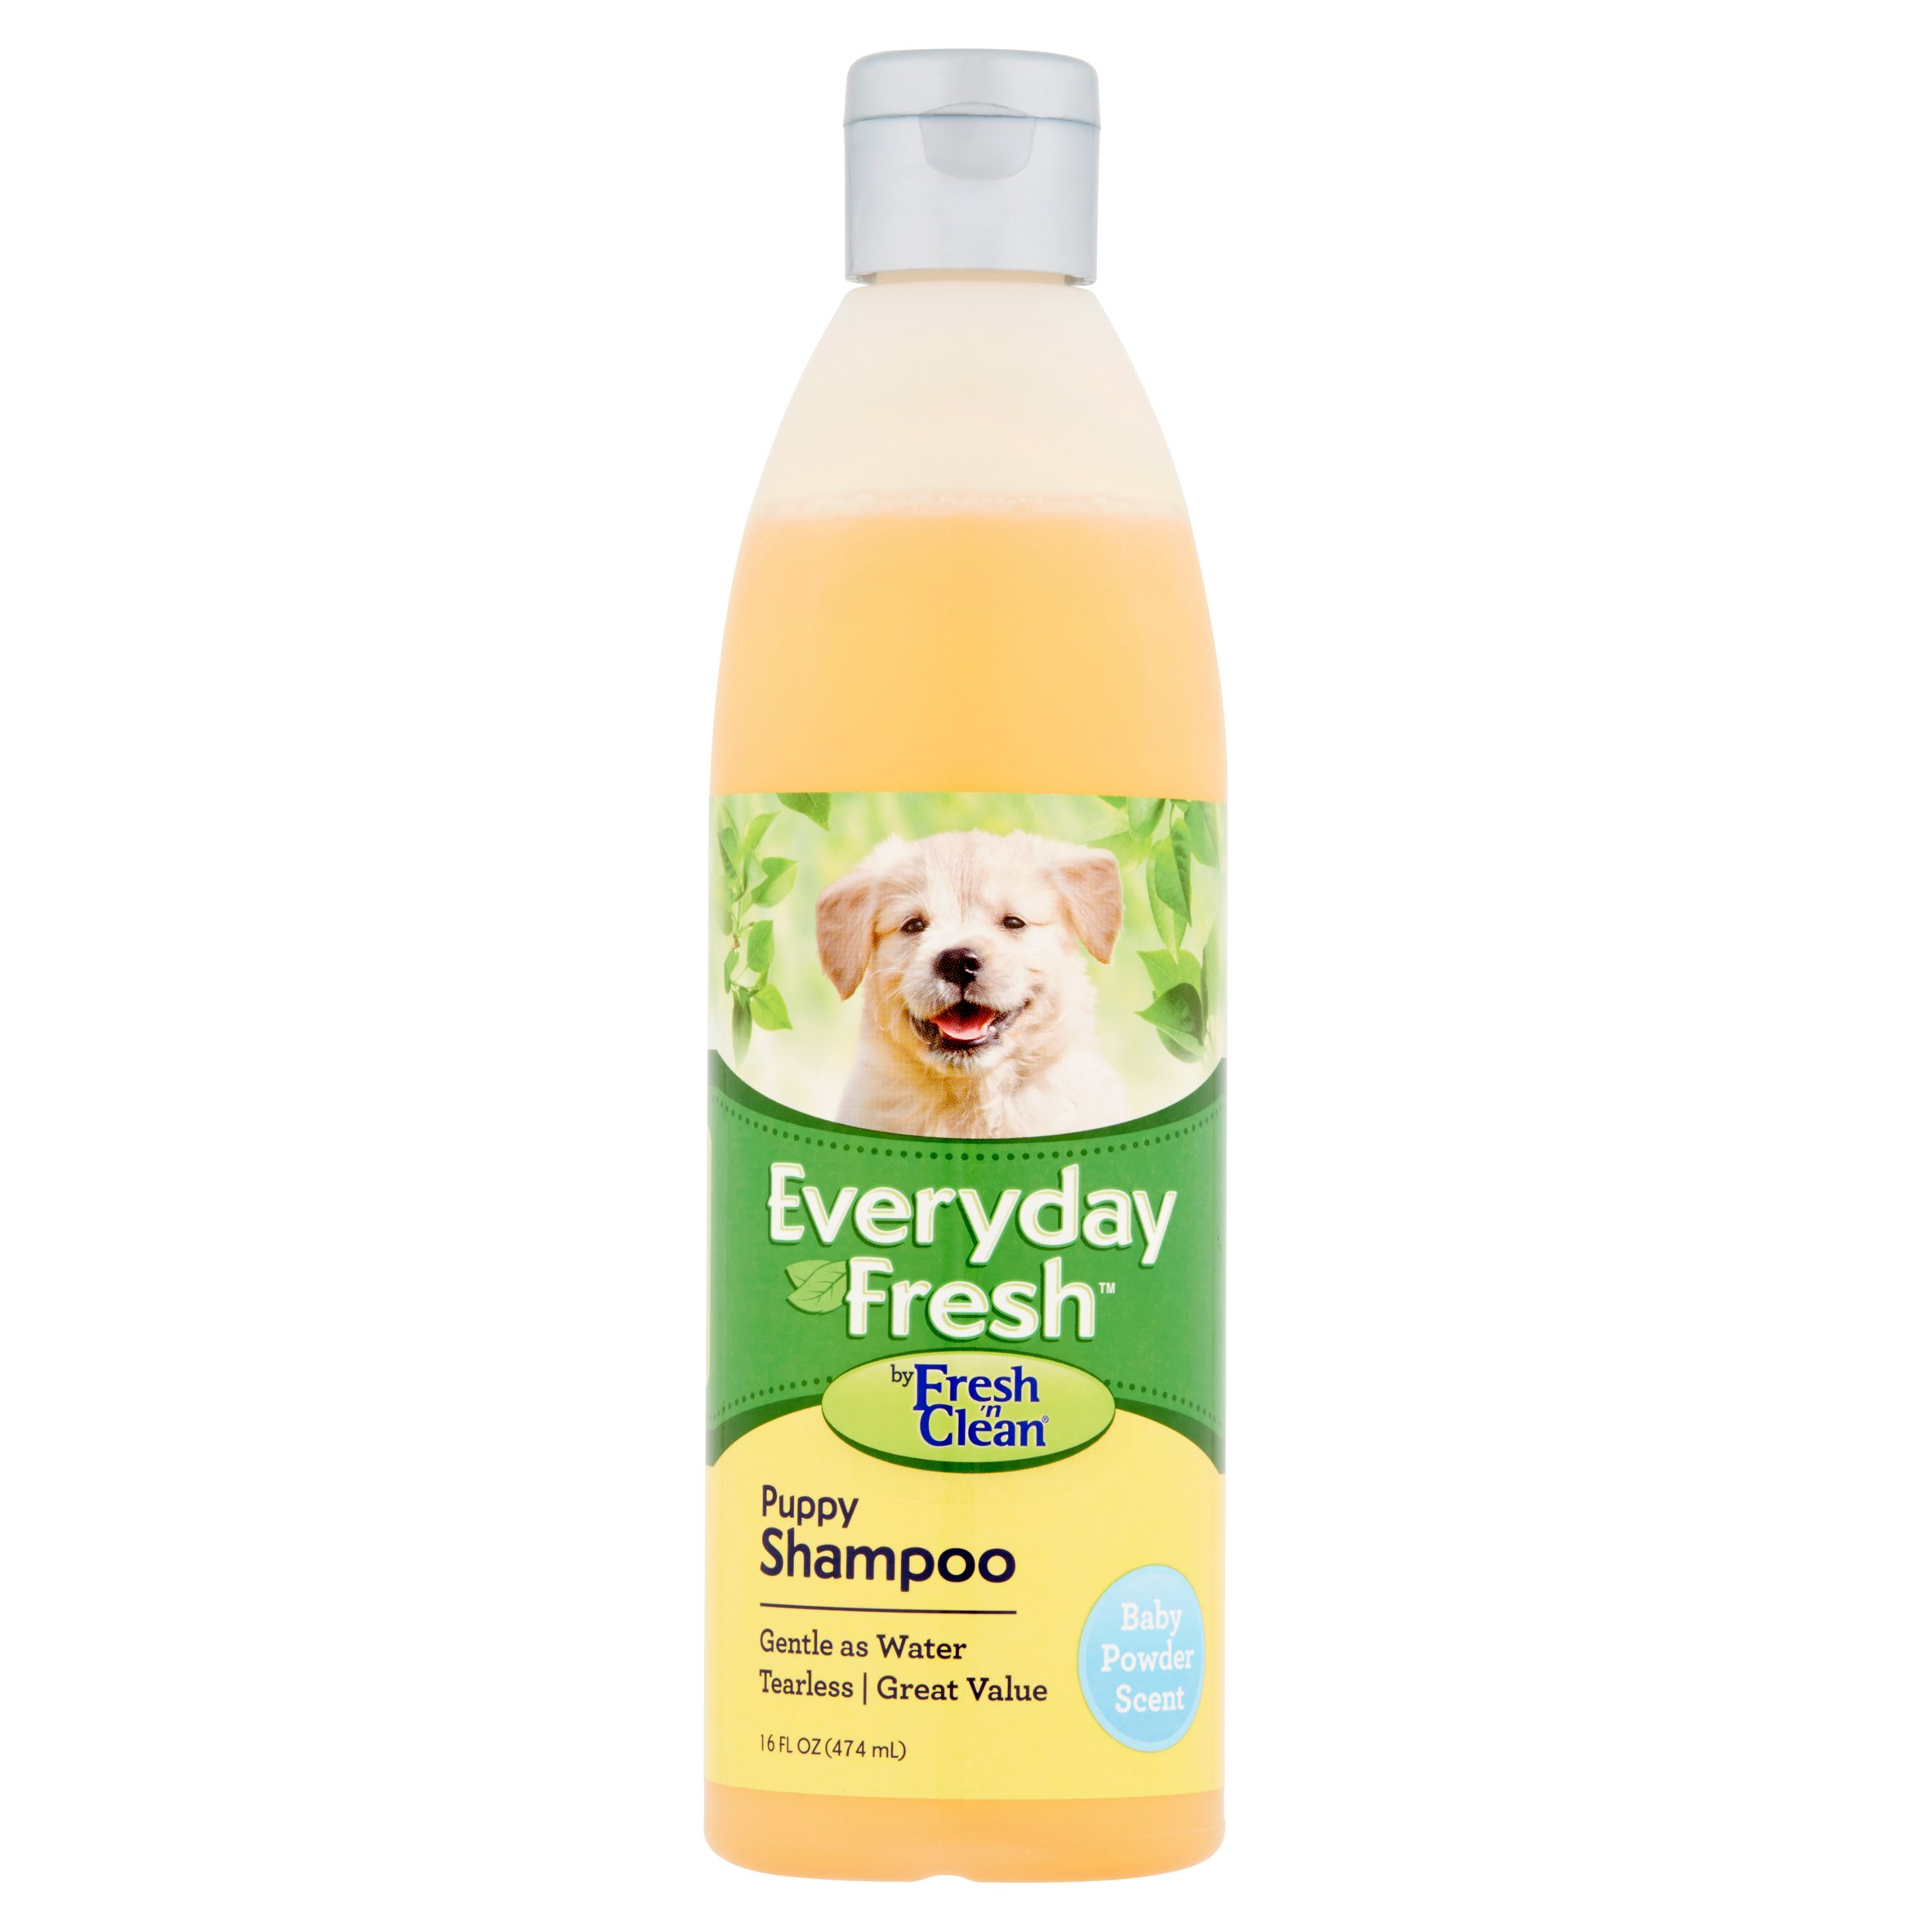 Fresh 'n Clean Everyday Fresh Puppy Shampoo, Baby Powder Scent, 16 oz. by Pet-Ag, Inc., An Employee-Owned Company